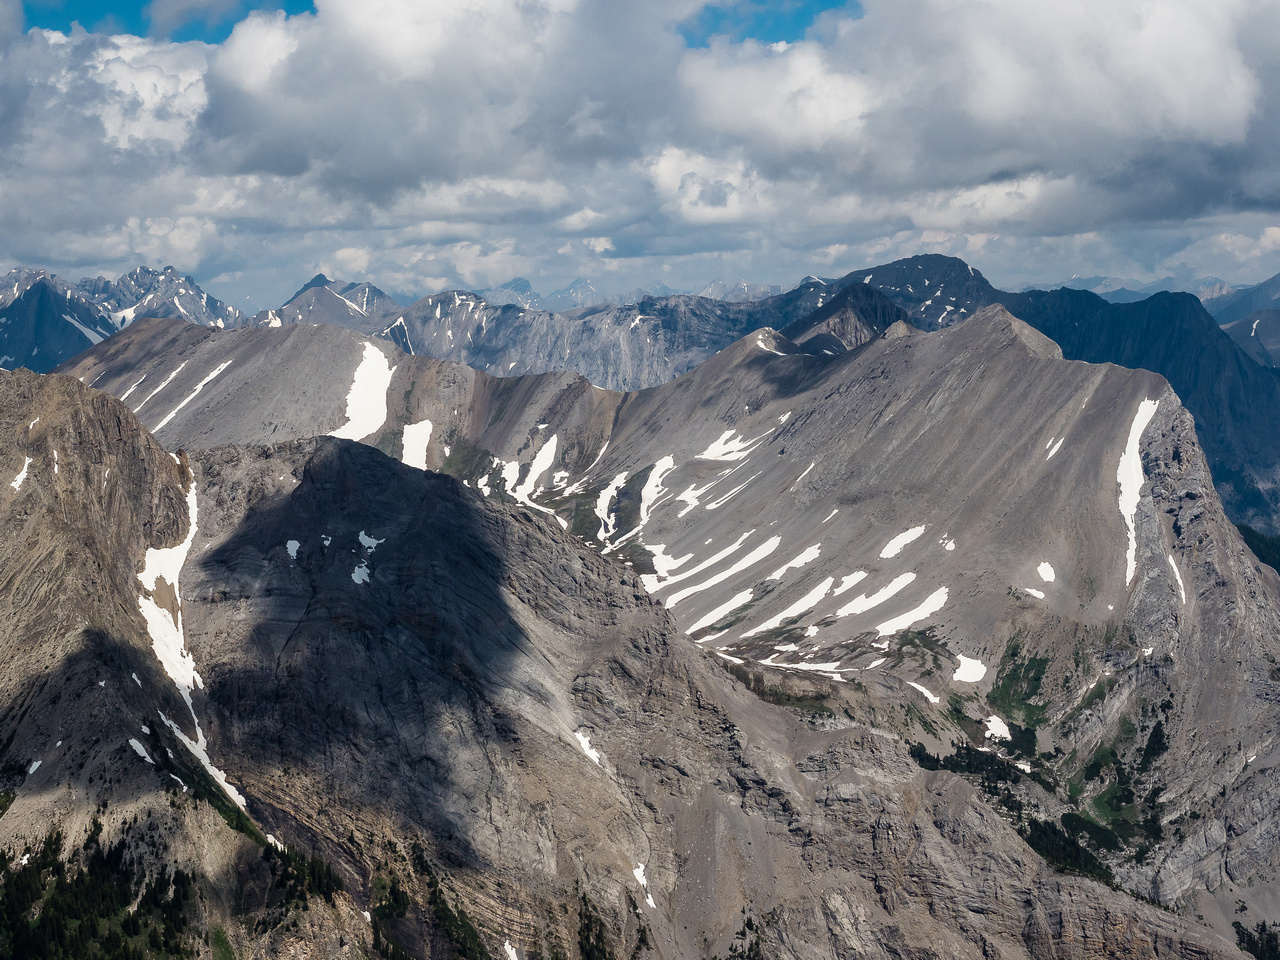 Mount Morrison at right with Cone and Turner just to its left. Owl Peak at mid left along the ridge from Morrison.